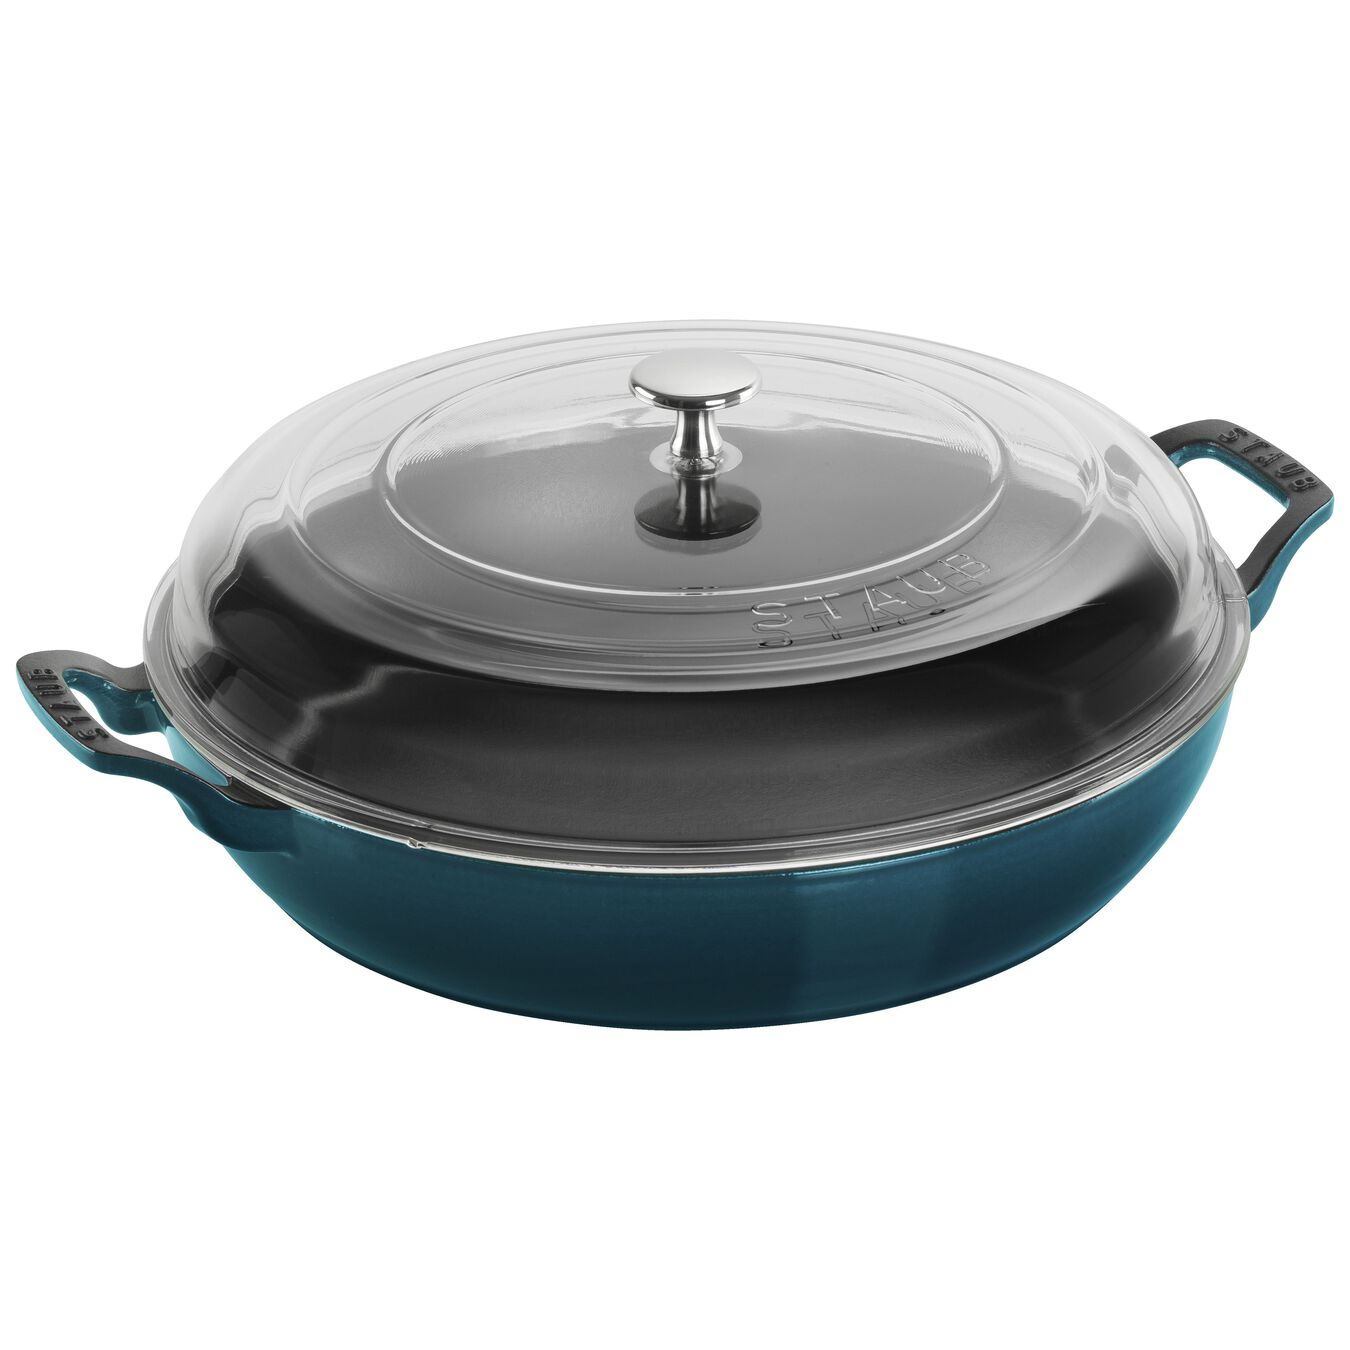 12-inch, Saute pan with glass lid, la mer,,large 1